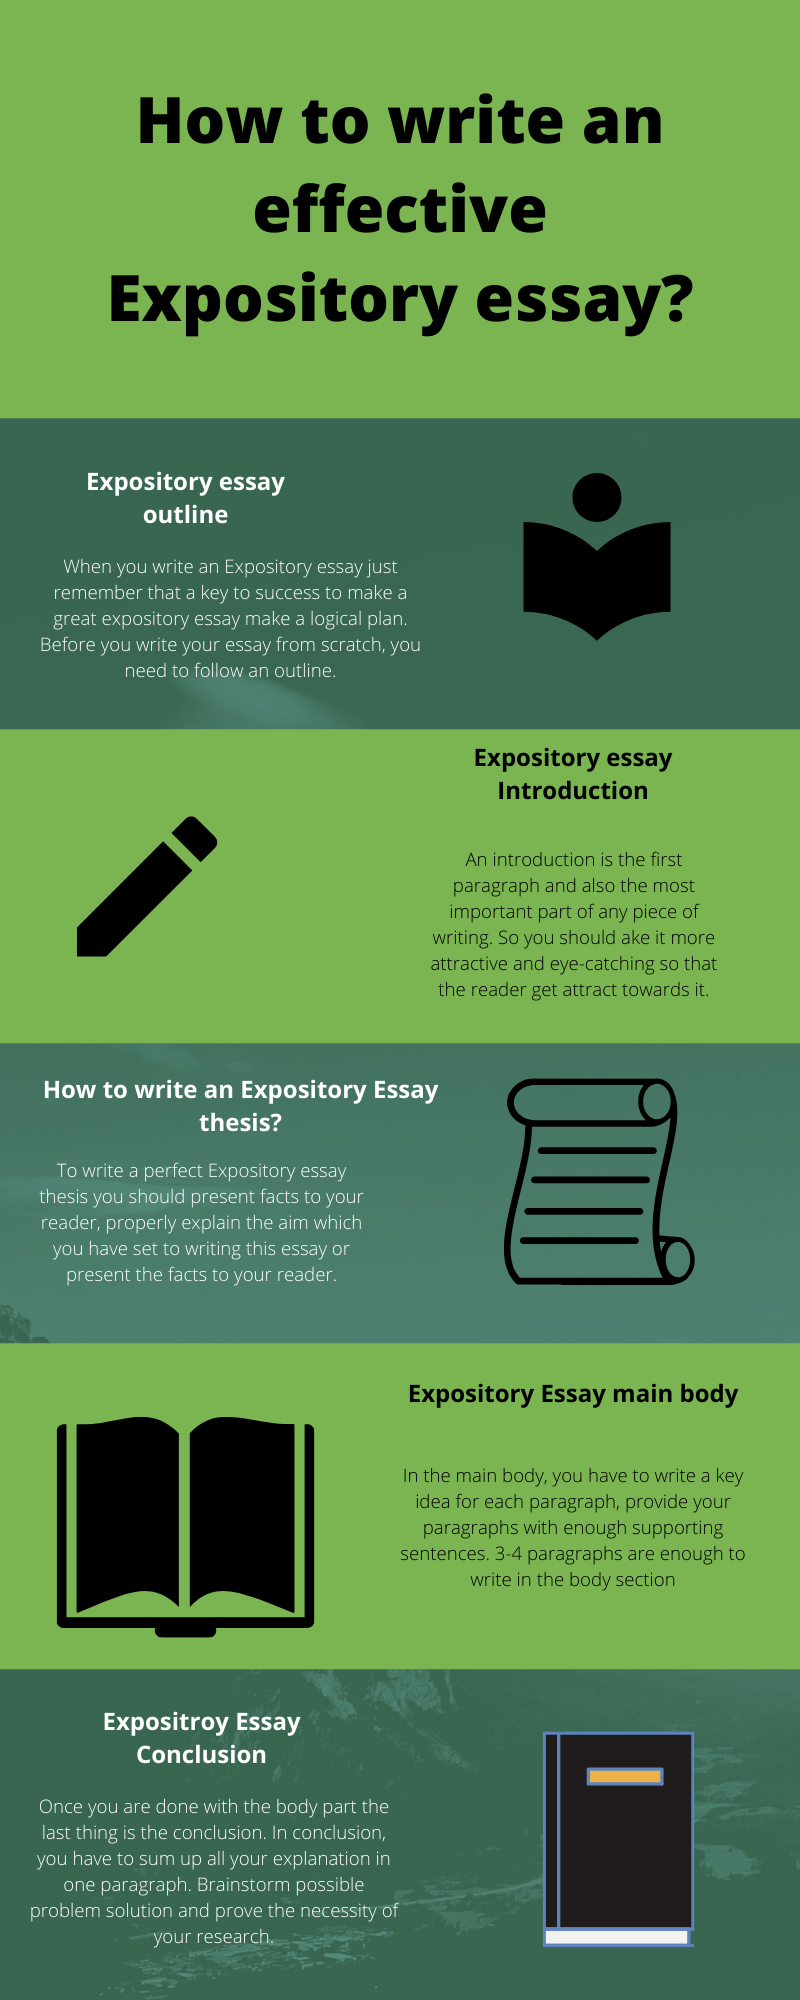 tips to write an effective expository essay infographic